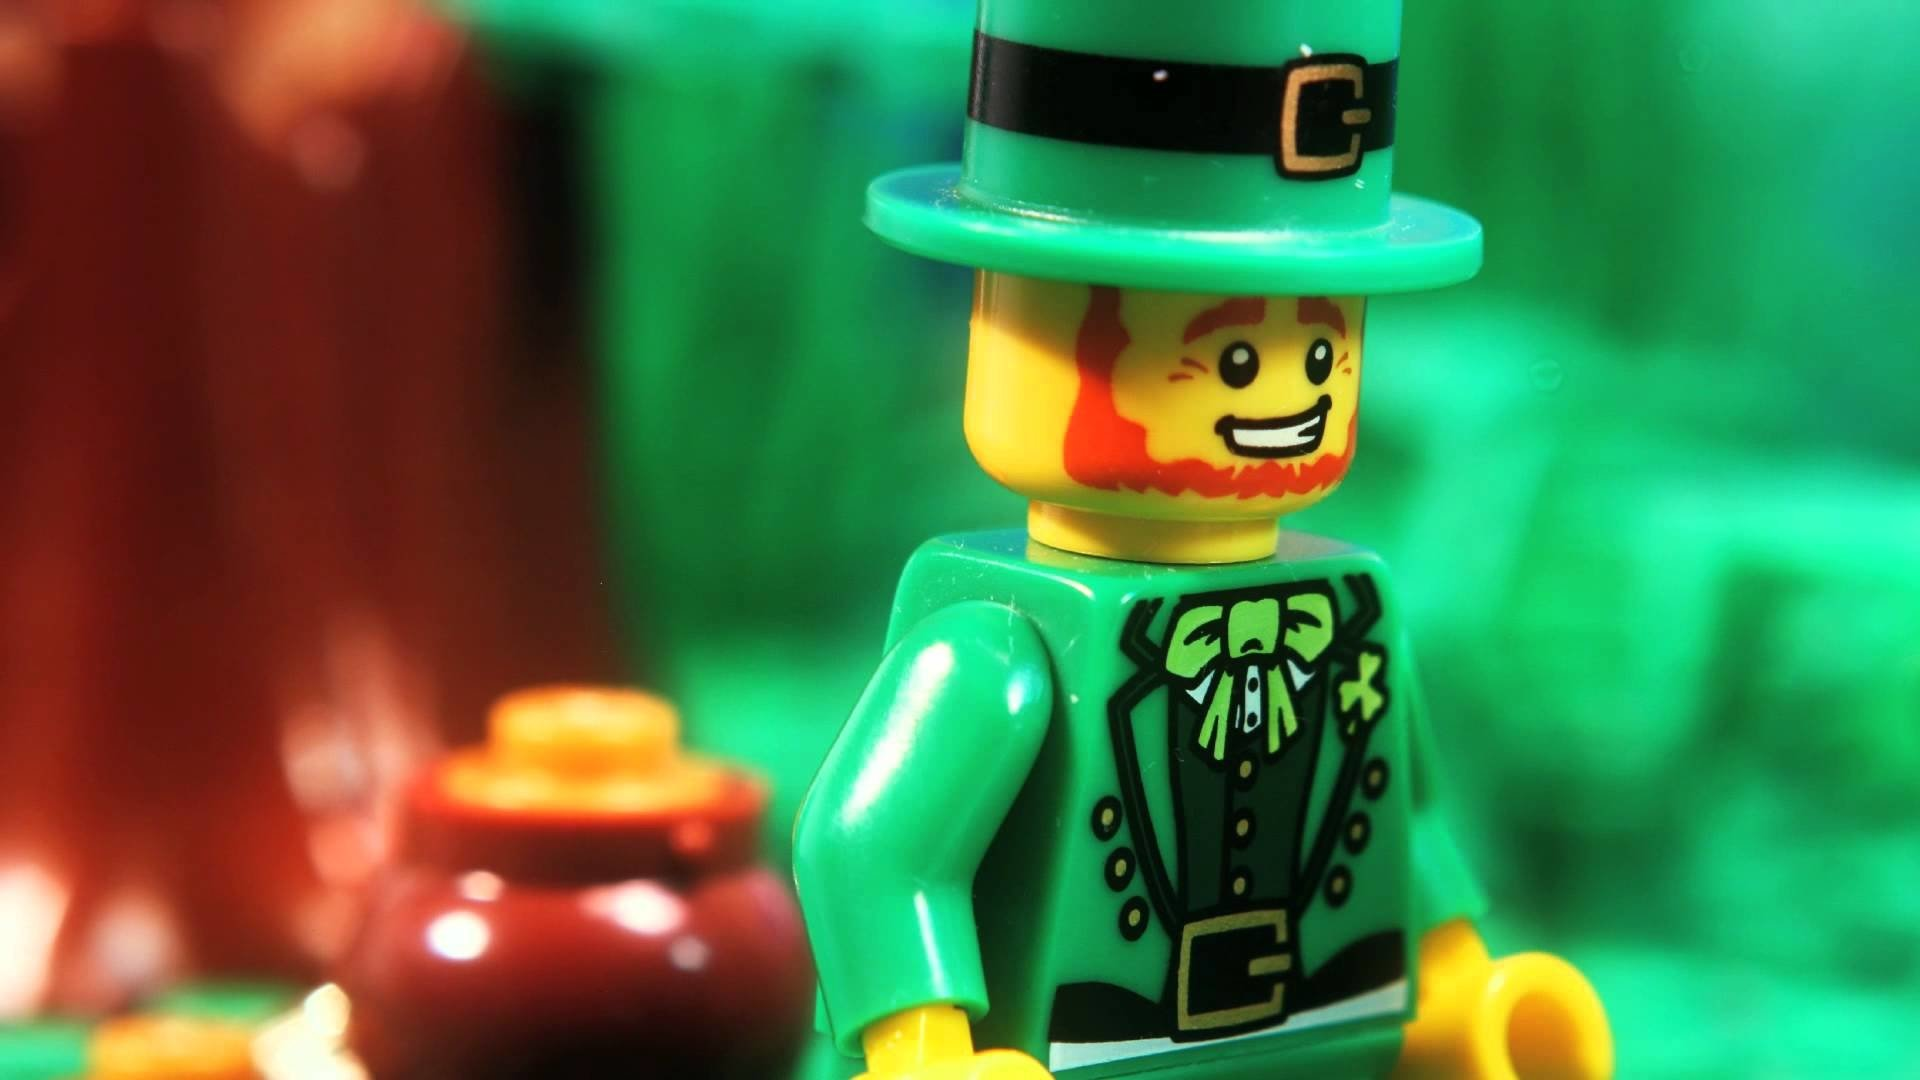 Holiday - St. Patrick's Day  Lego Wallpaper